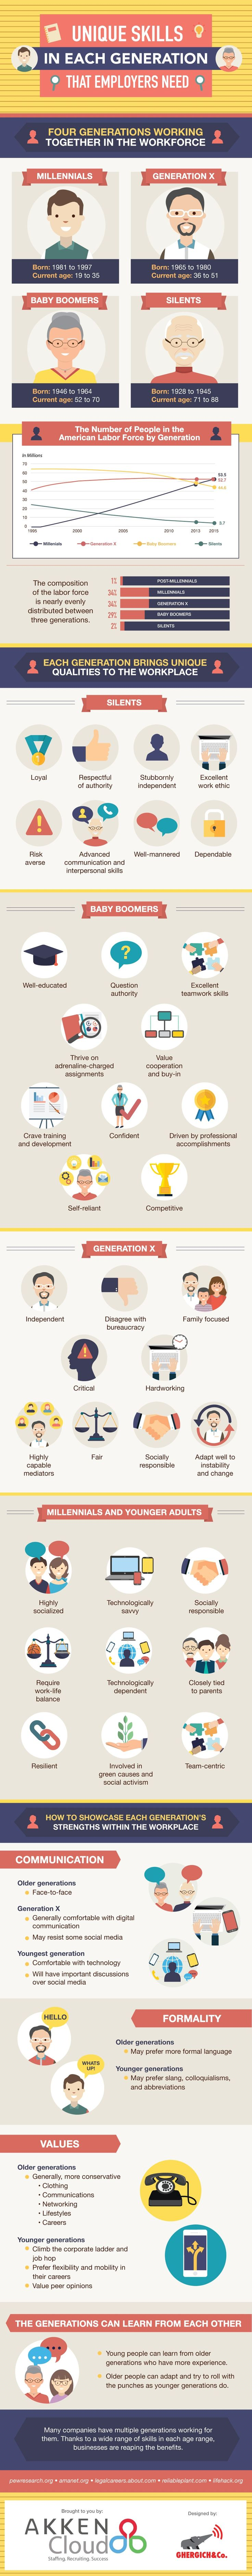 Infographic: Unique Skills in Each Generation That Employers Need #Infographic #Business #Workplace